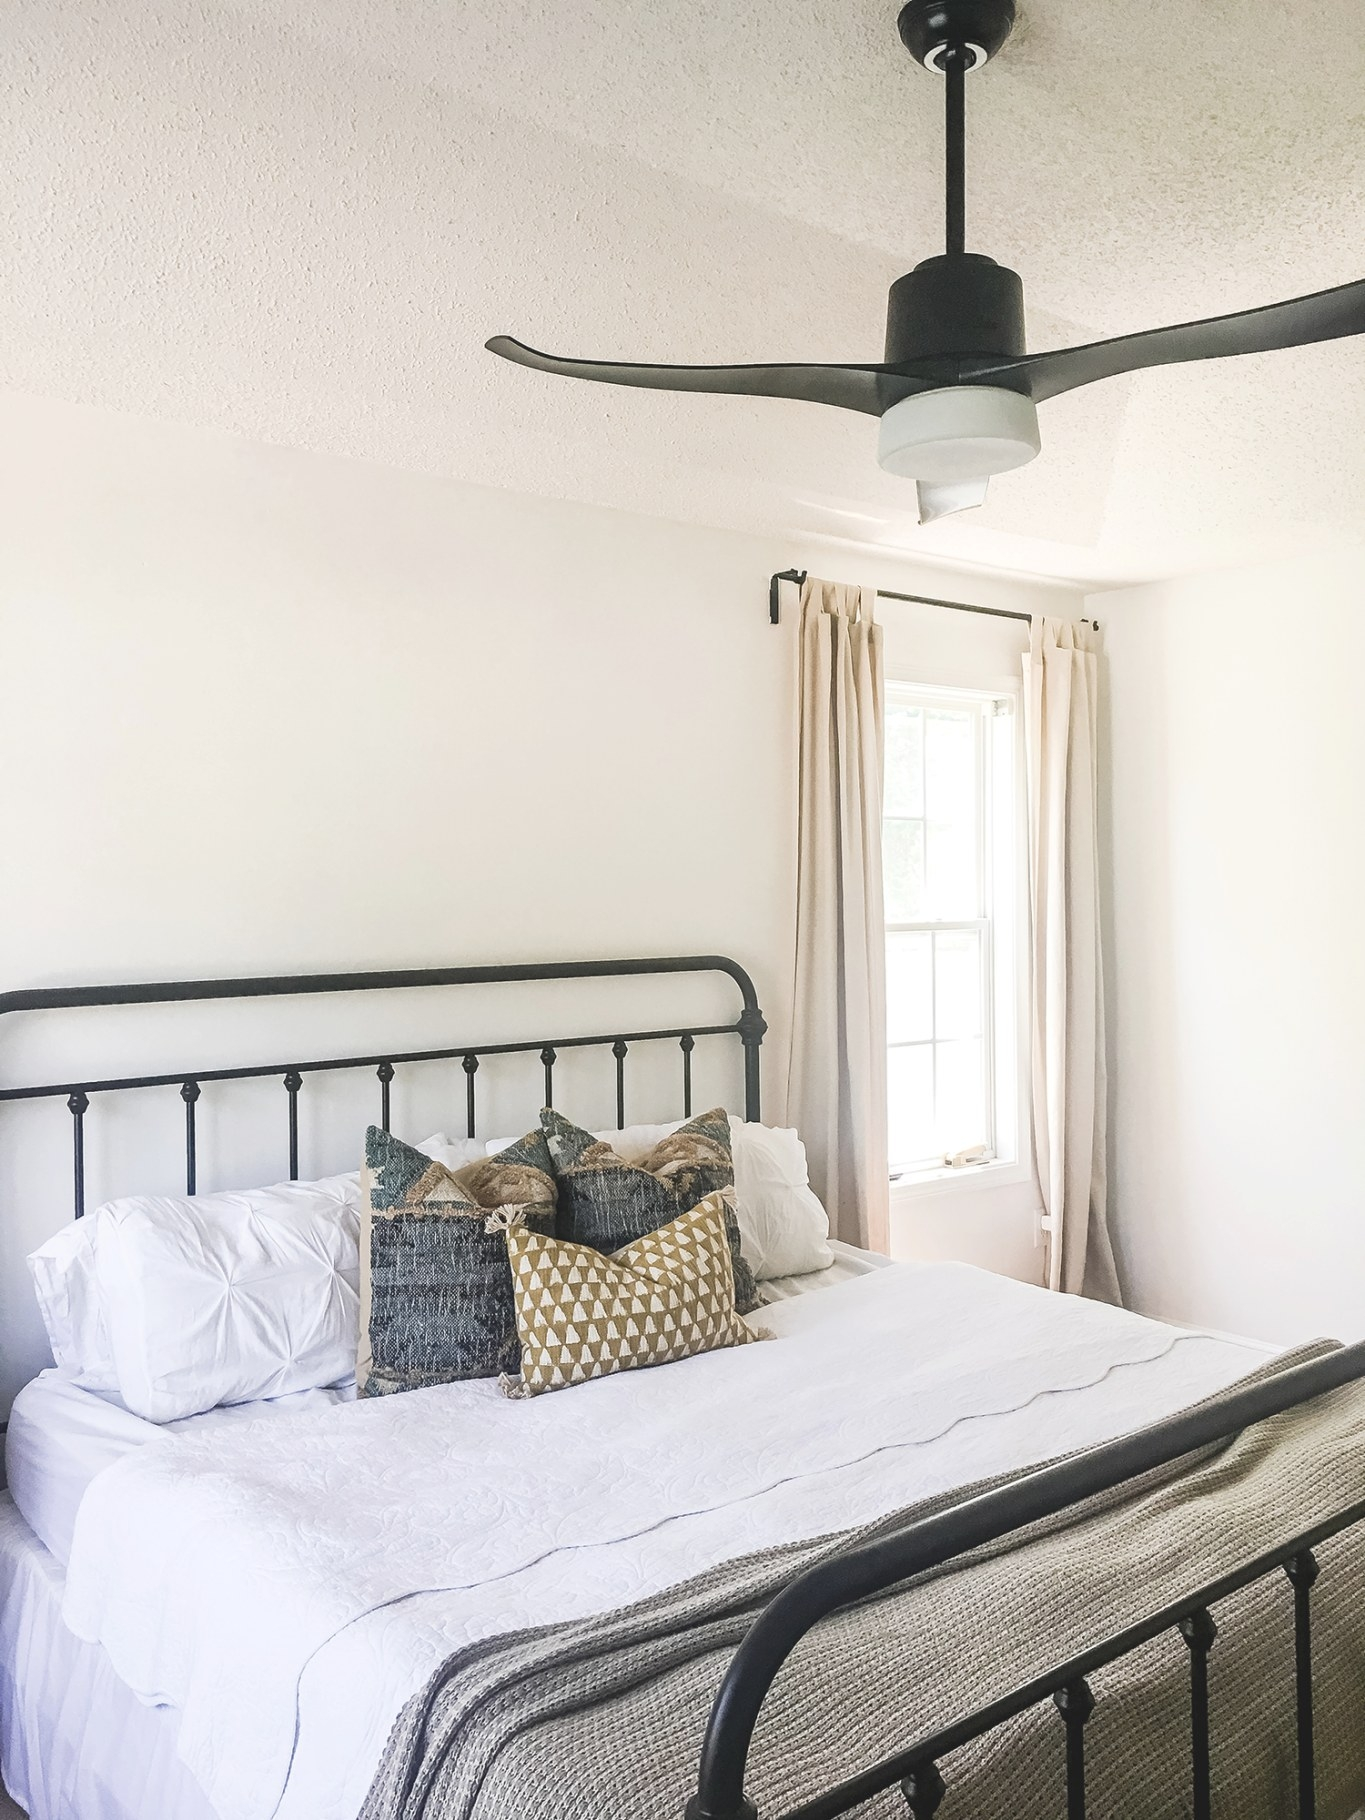 Morgan-Castle-Blogger-Bedroom-Makeover-With-Modern-Black throughout Ceiling Fan In Bedroom